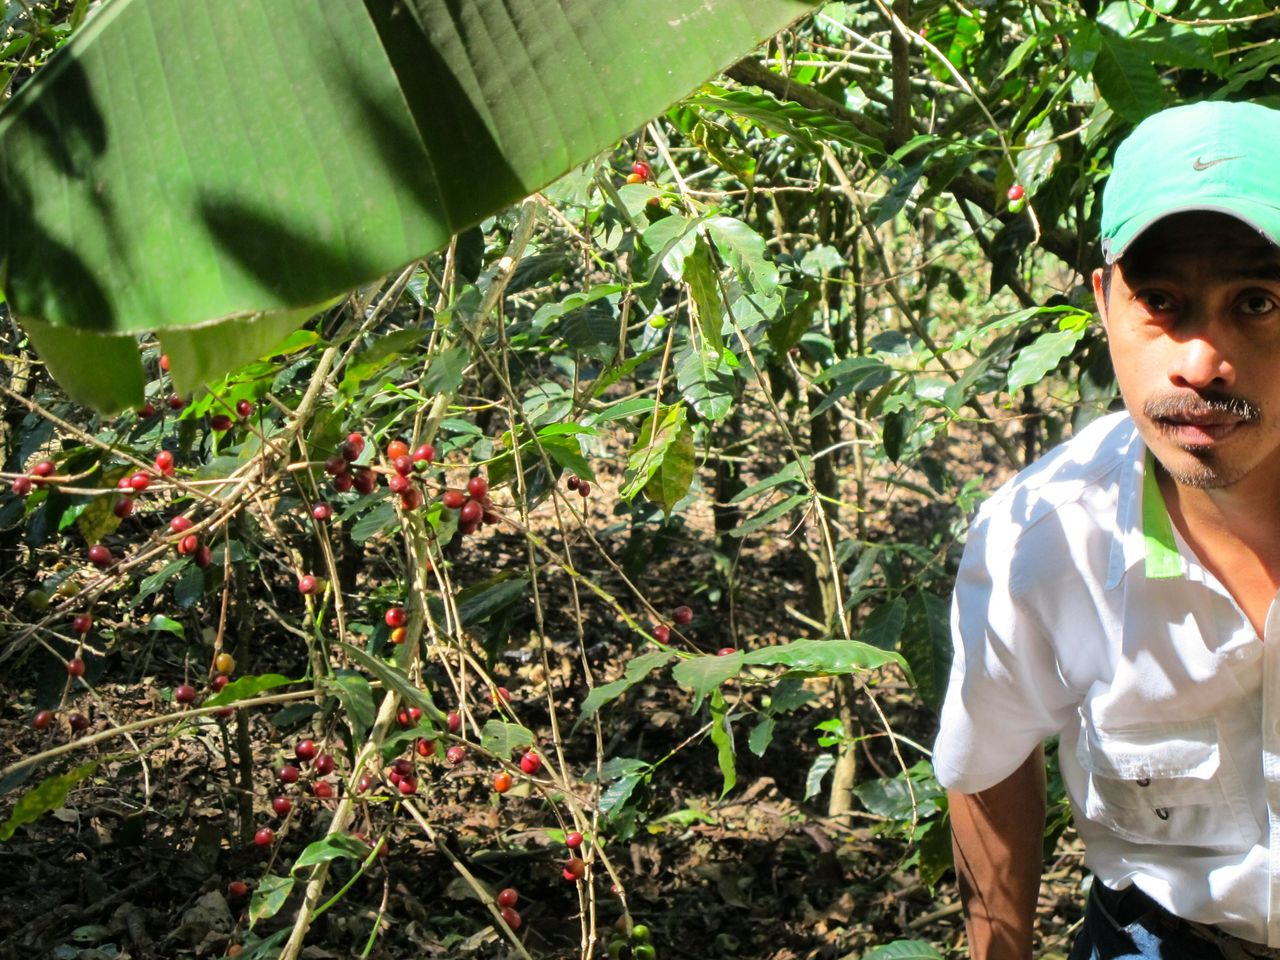 An agronomist for Coffee & Climate on a blighted coffee plantation.